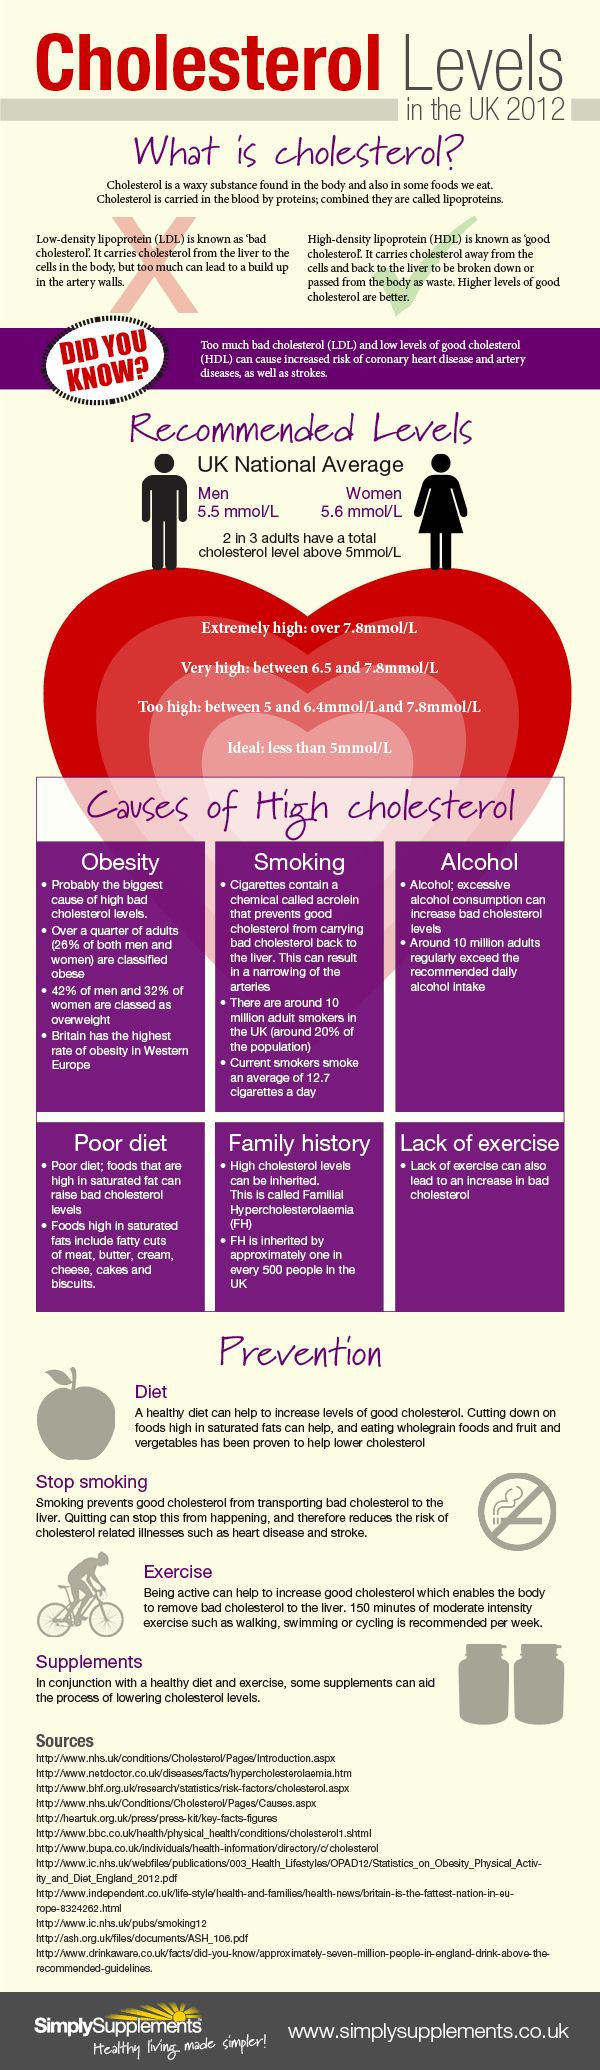 Cholesterol Infographic